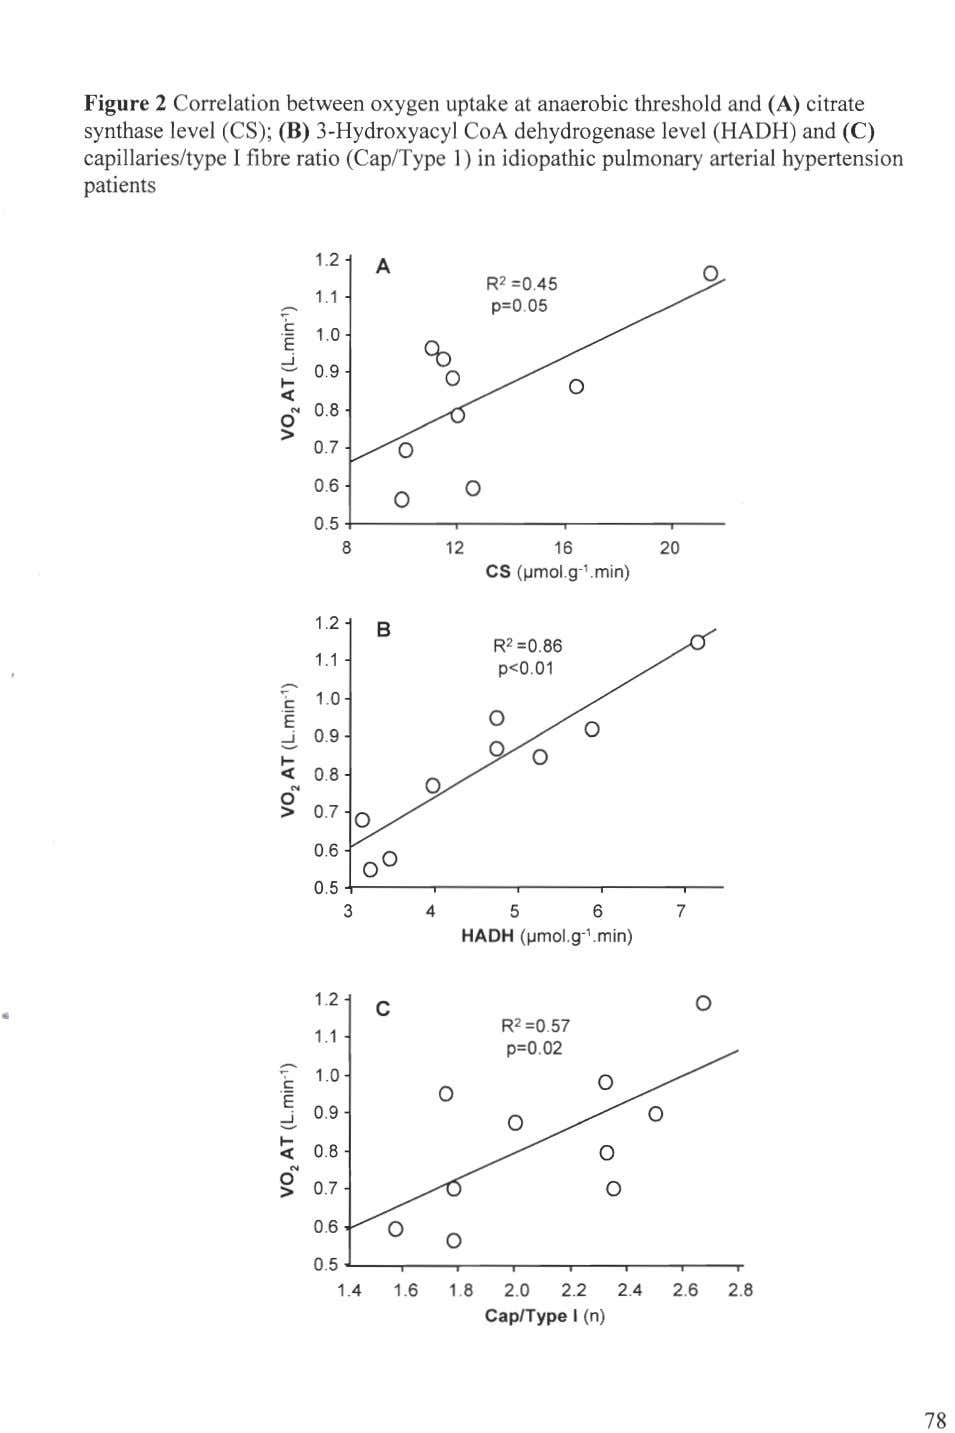 Figure 2 Correlation between oxygen uptake at anaerobie threshold and (A) citrate synthase level (CS);